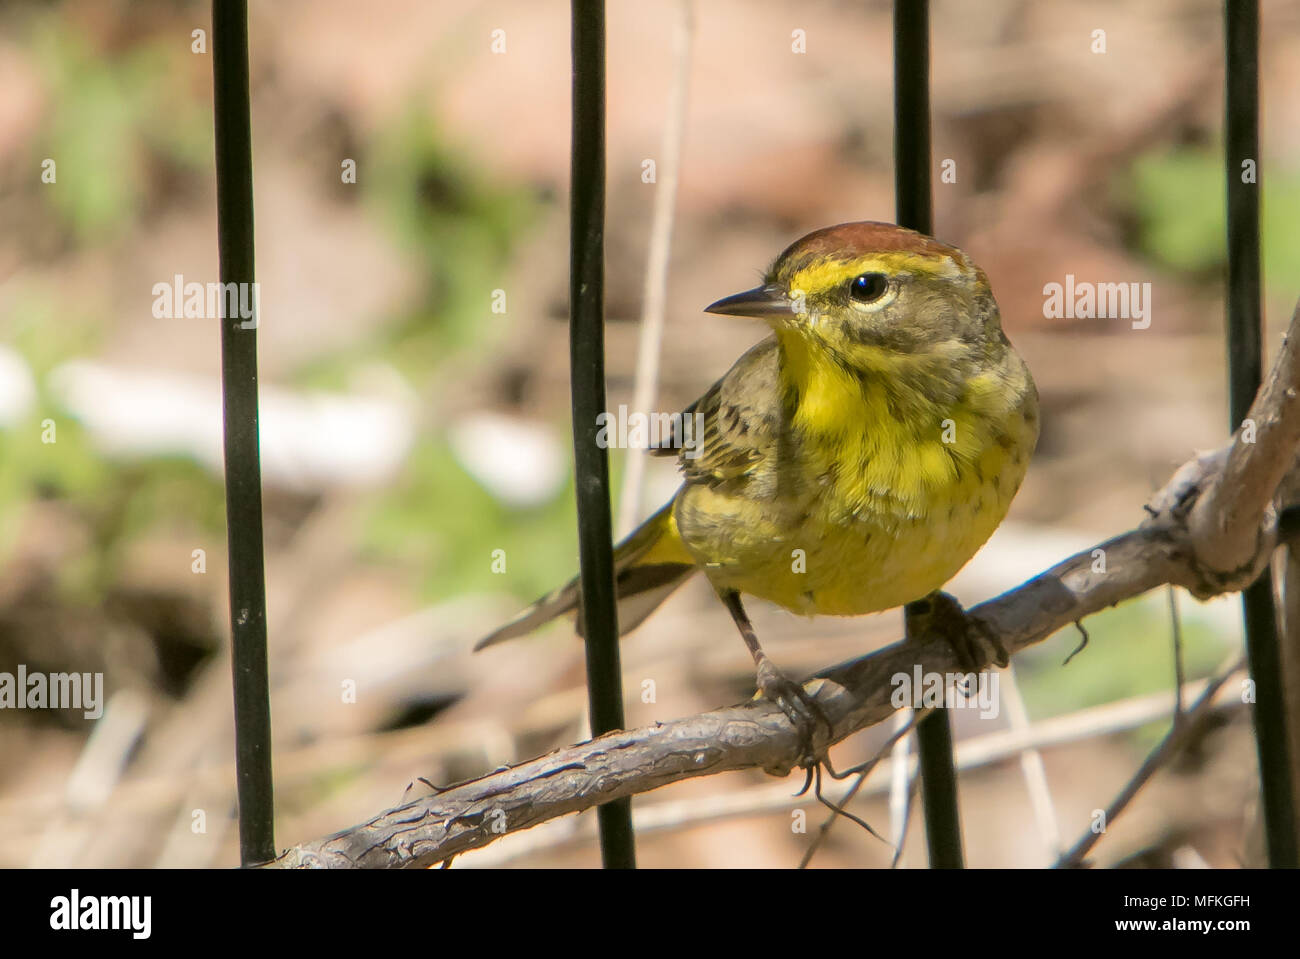 Palm Warbler [Setophaga palmarum]. Central Park, NYC. - Stock Image